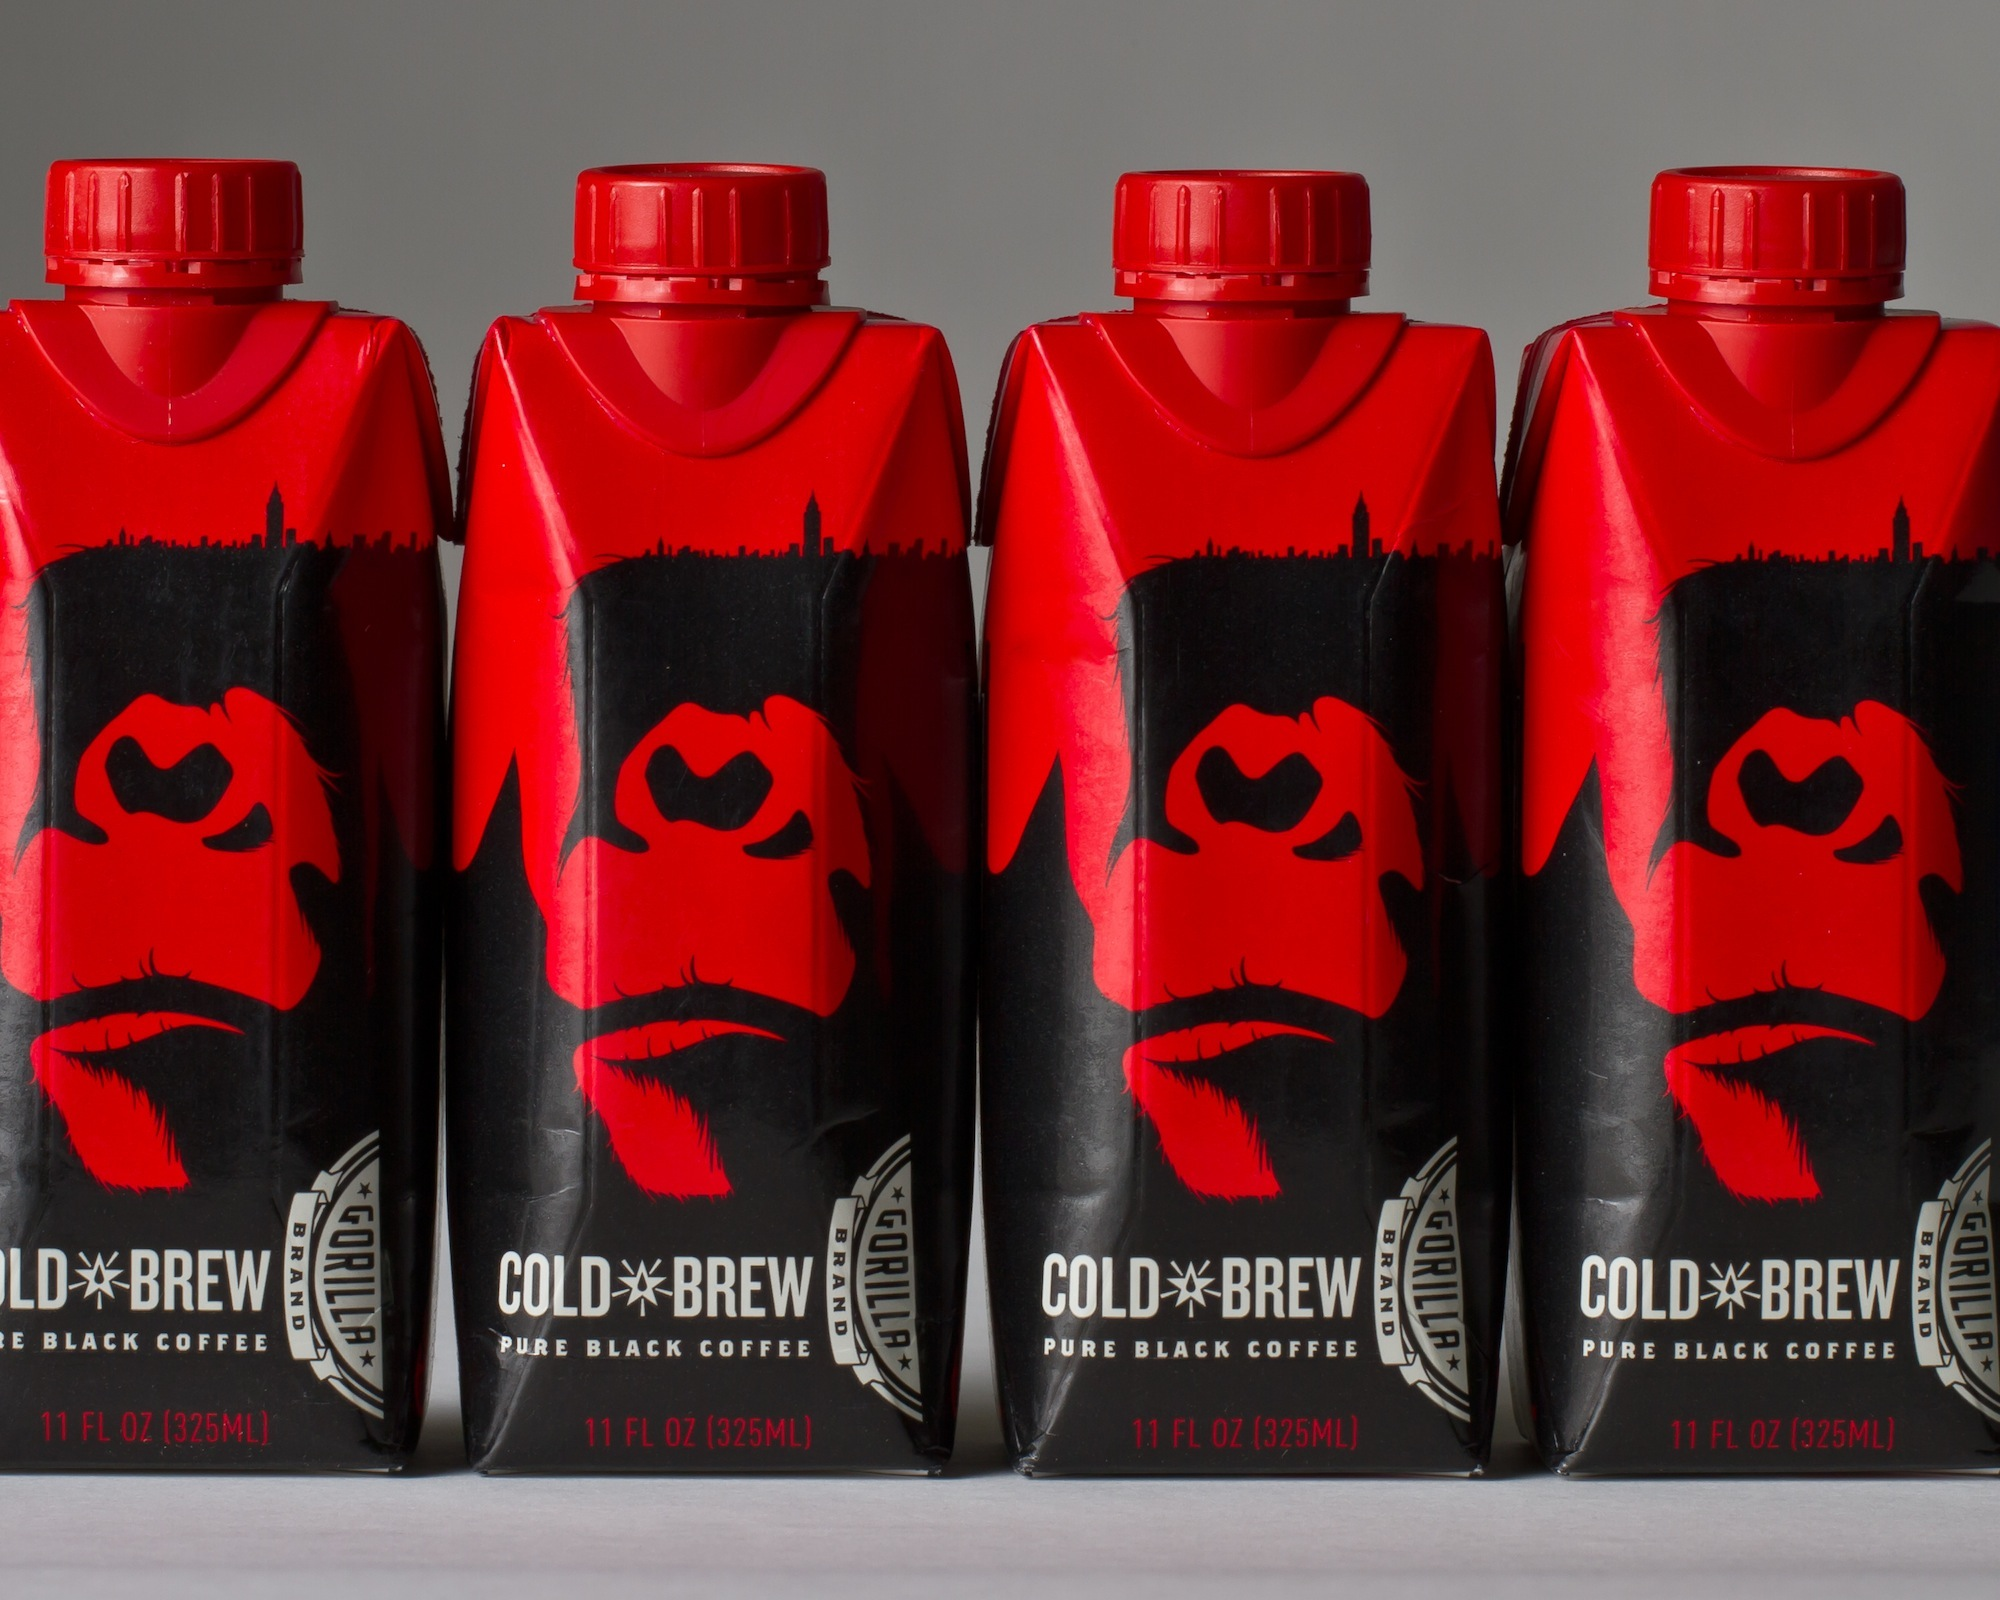 Chill Out With Gorilla Cold Brew